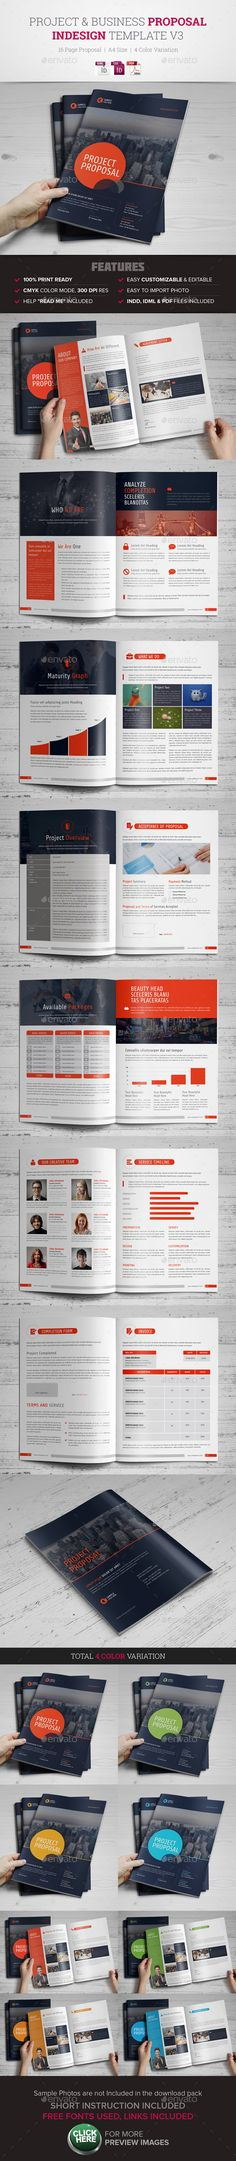 Word Documentation Cover Page Template Sponsorship-Proposal - microsoft proposal templates